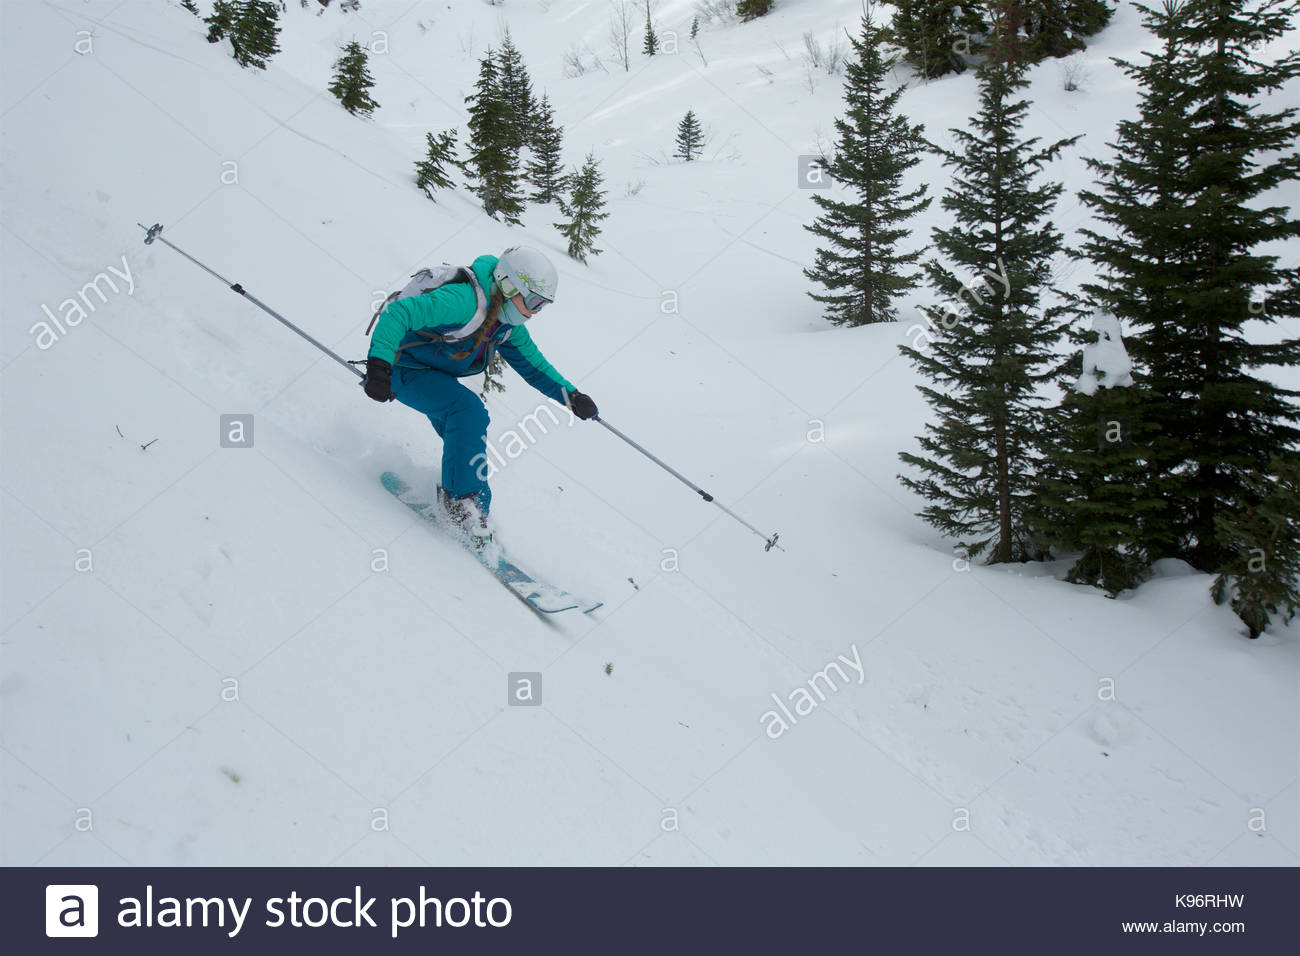 A teen girl backcountry skiing in the mountains with conifer trees. - Stock Image